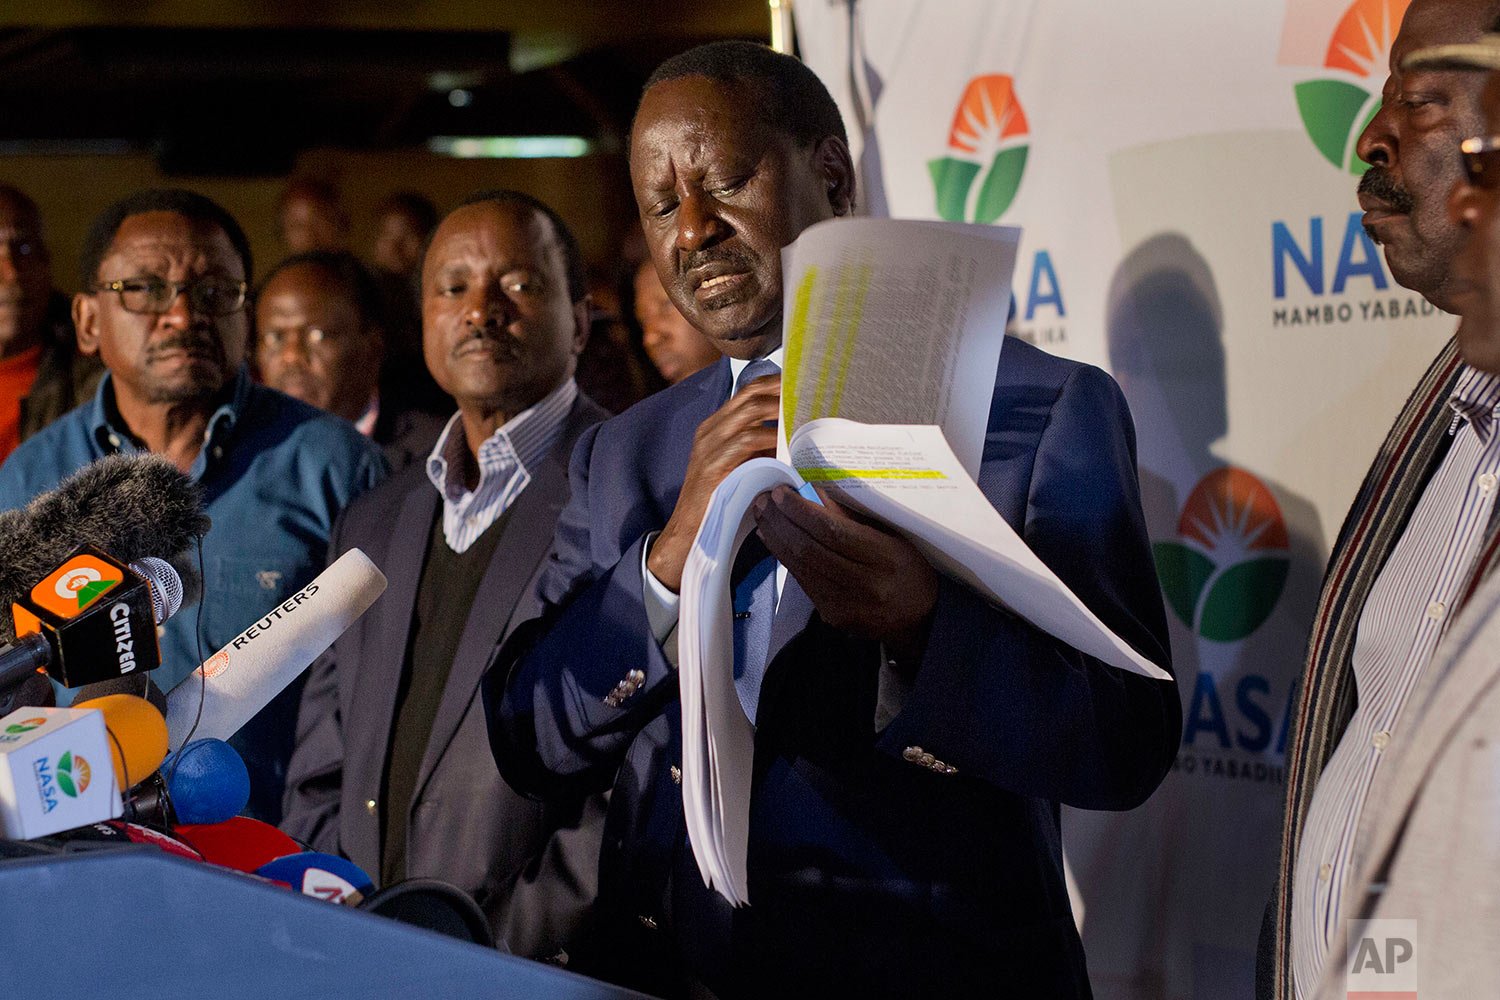 Opposition leader and presidential candidate Raila Odinga addresses a news conference in Nairobi, Kenya, Wednesday, Aug. 9, 2017. Odinga says hackers infiltrated the database of the country's election commission and manipulated the results. Early results show President Uhuru Kenyatta with a wide lead over Odinga. (AP Photo/Jerome Delay)